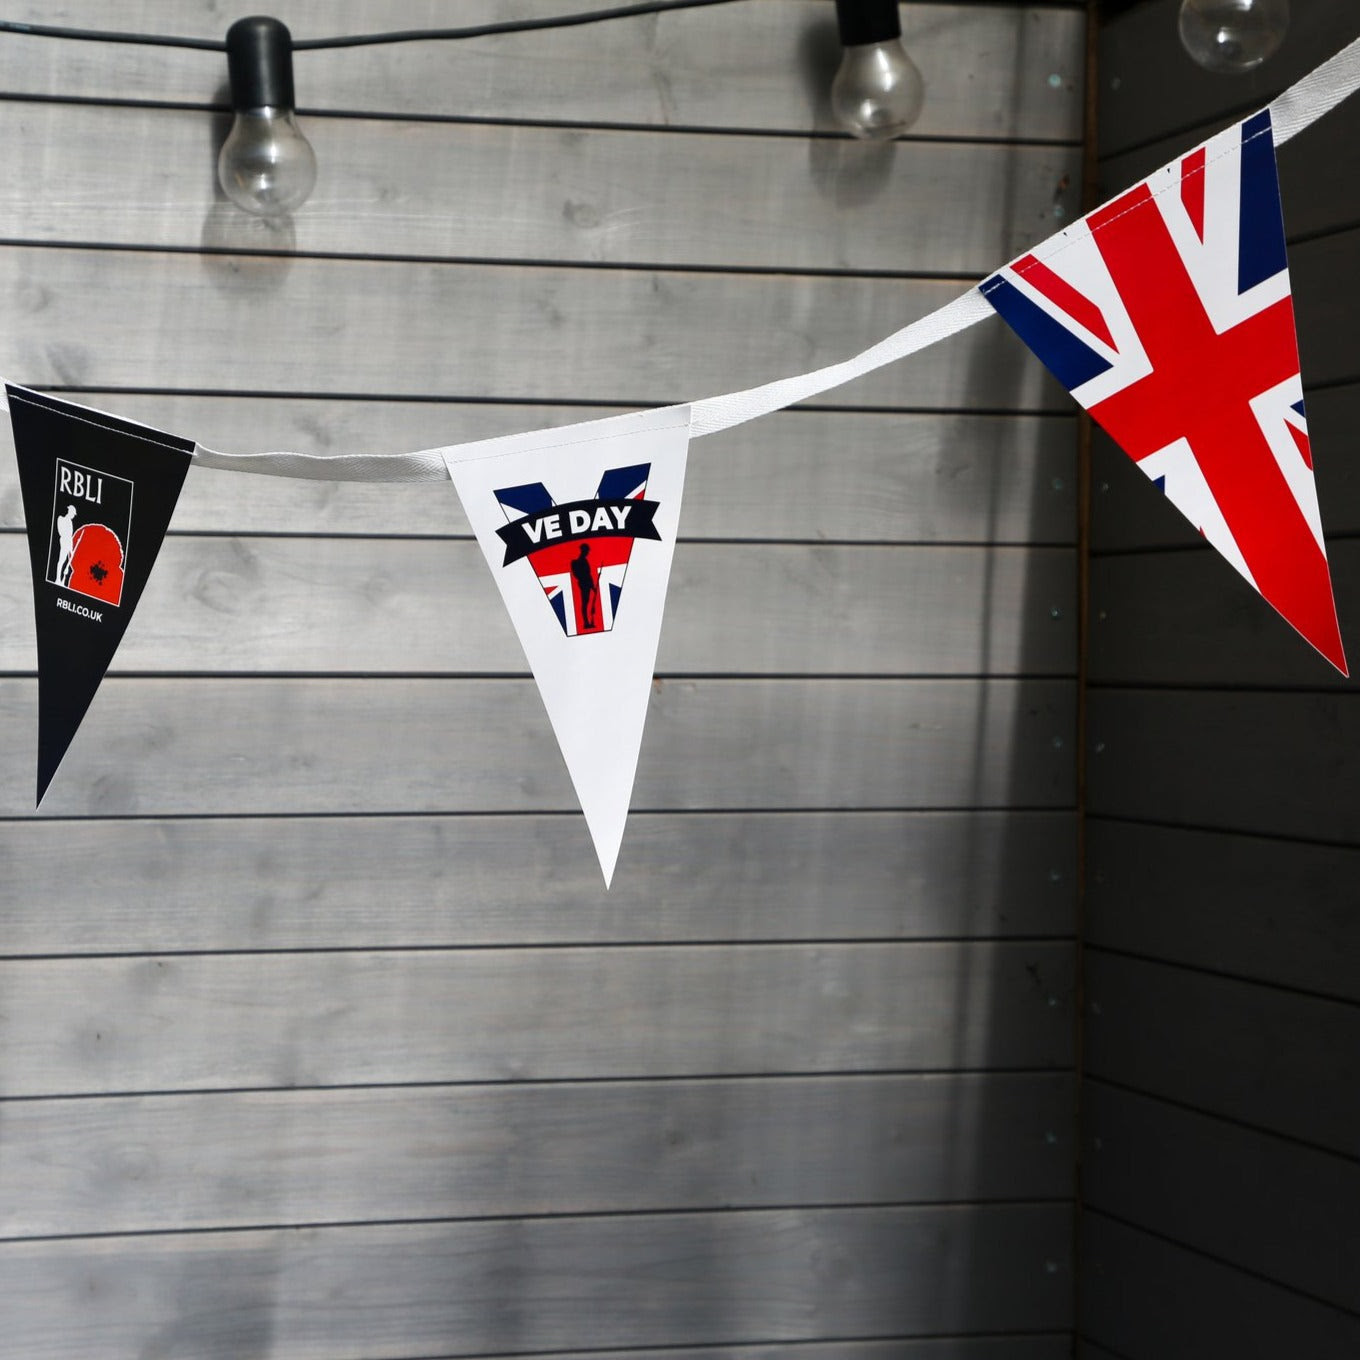 VE Day 2021 Union Jack Tommy Bunting